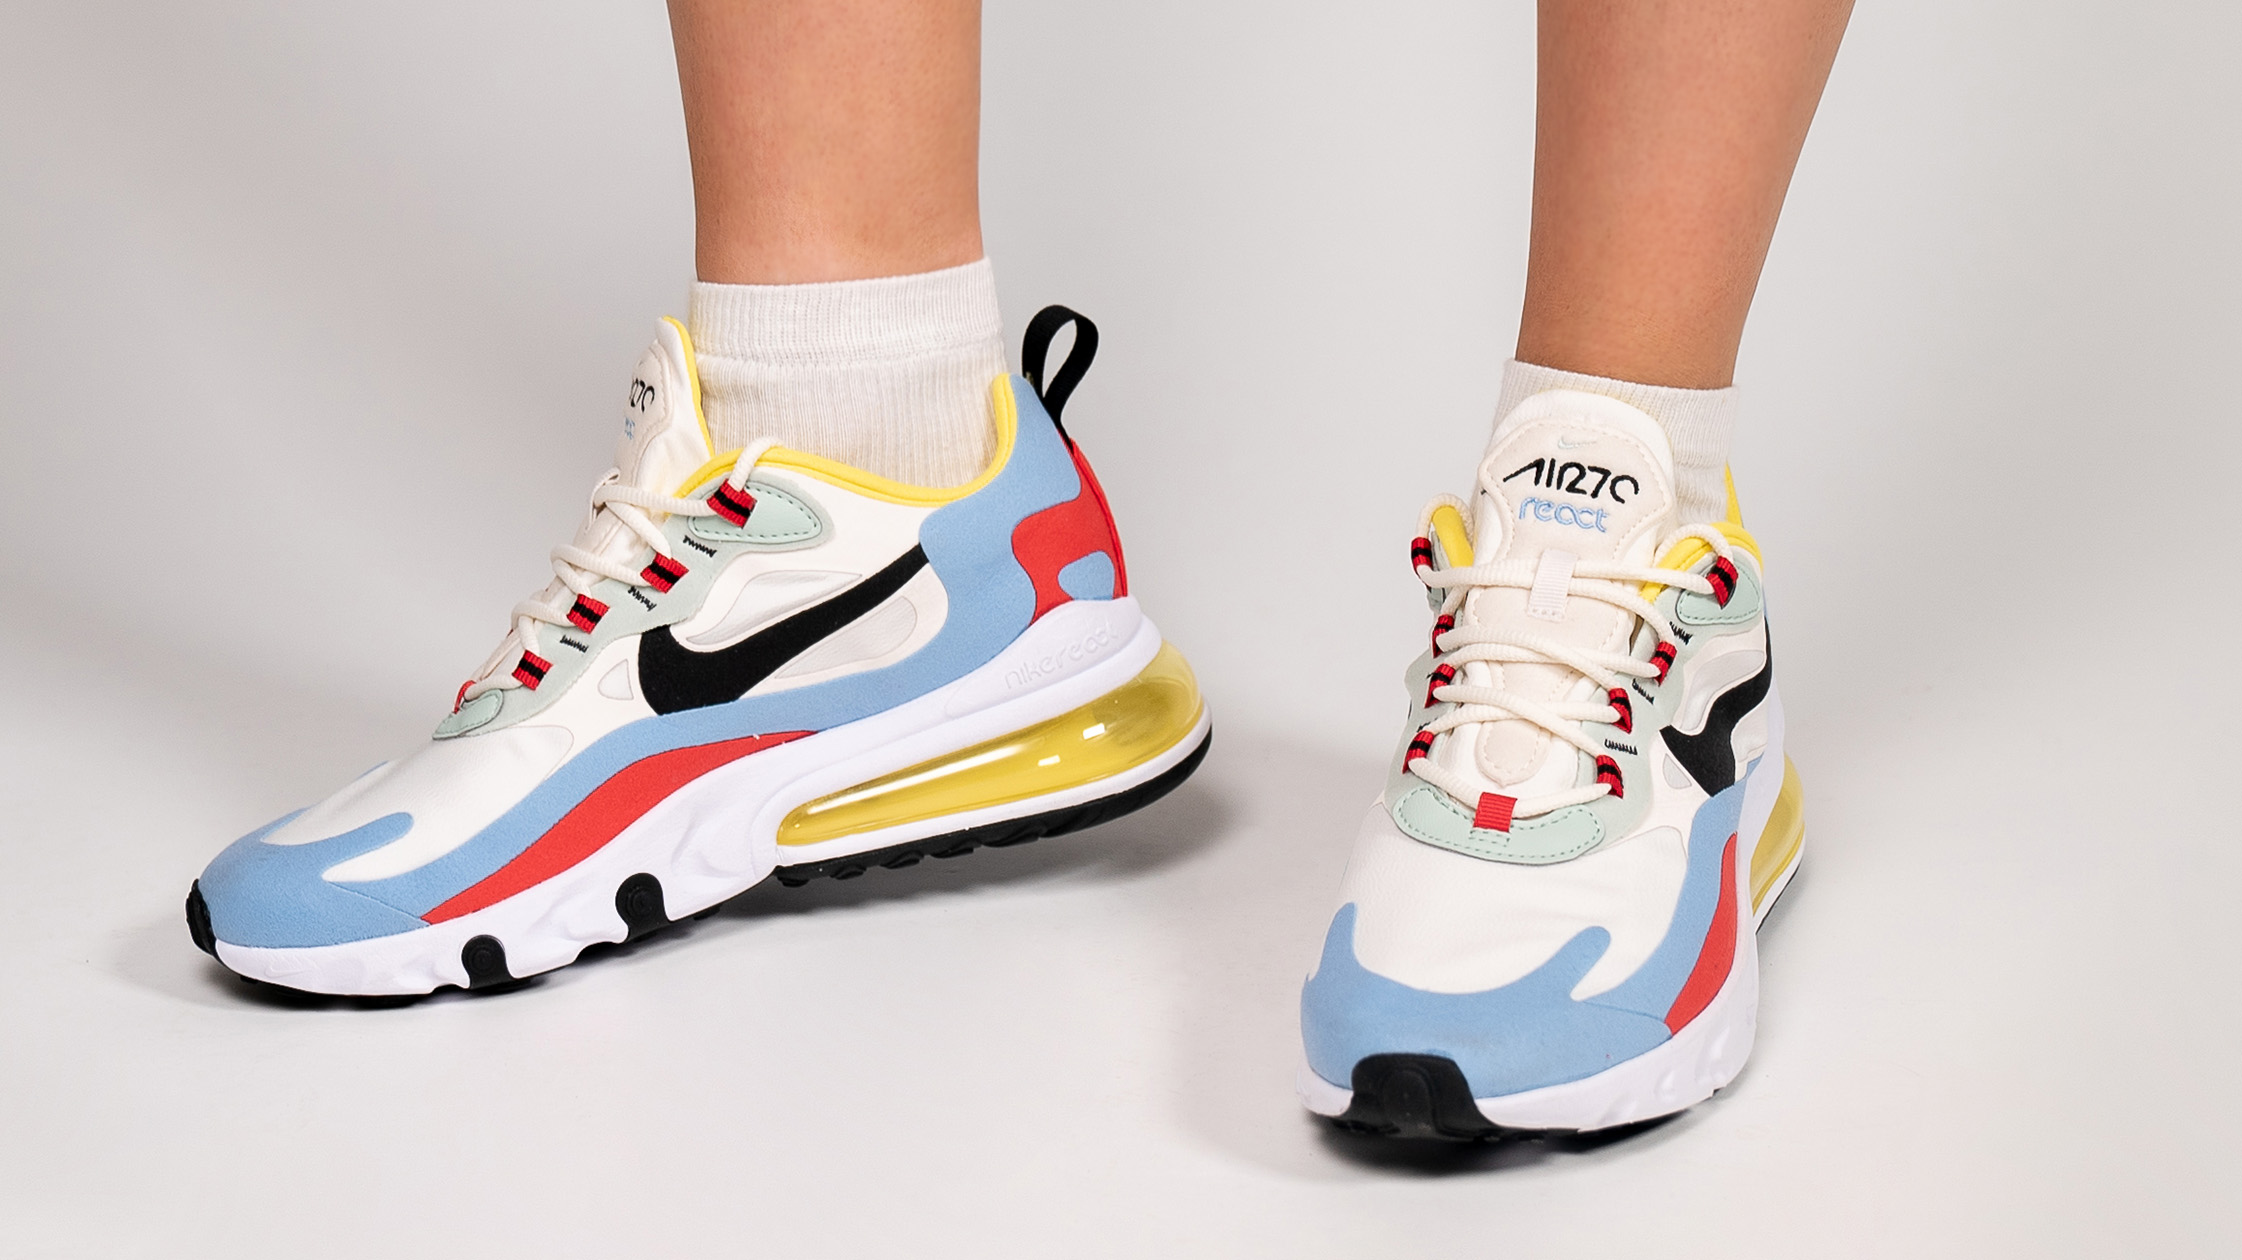 reputable site 69fdc fcdd8 An Exclusive On Foot Look At The Nike Air Max 270 React ...